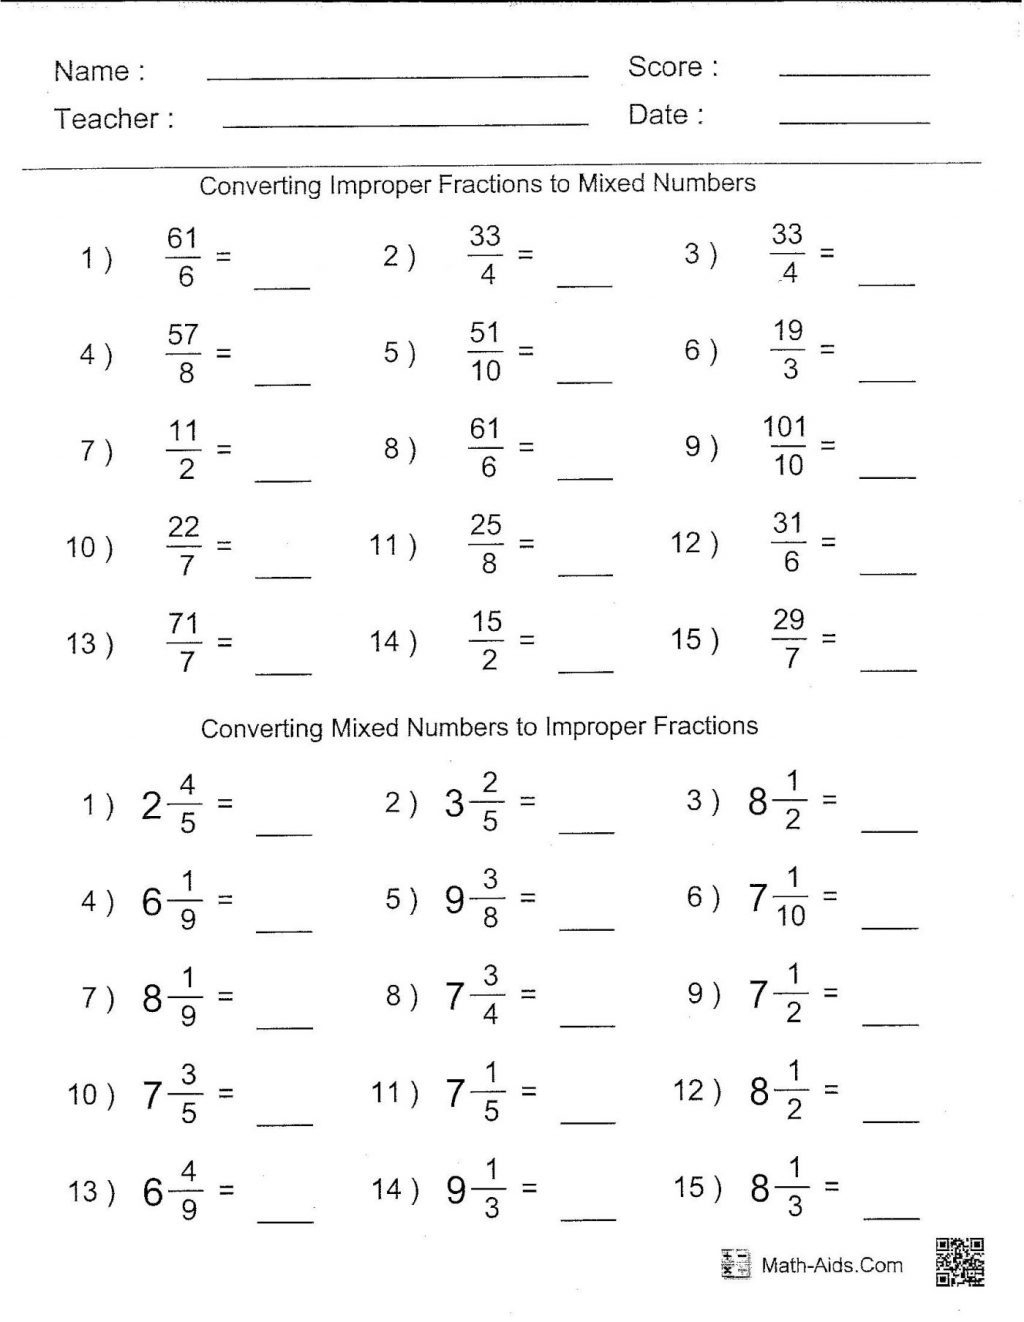 Free Printable Math Worksheets 6Th Grade Order Operations | Free | Free Printable Math Worksheets 6Th Grade Order Operations